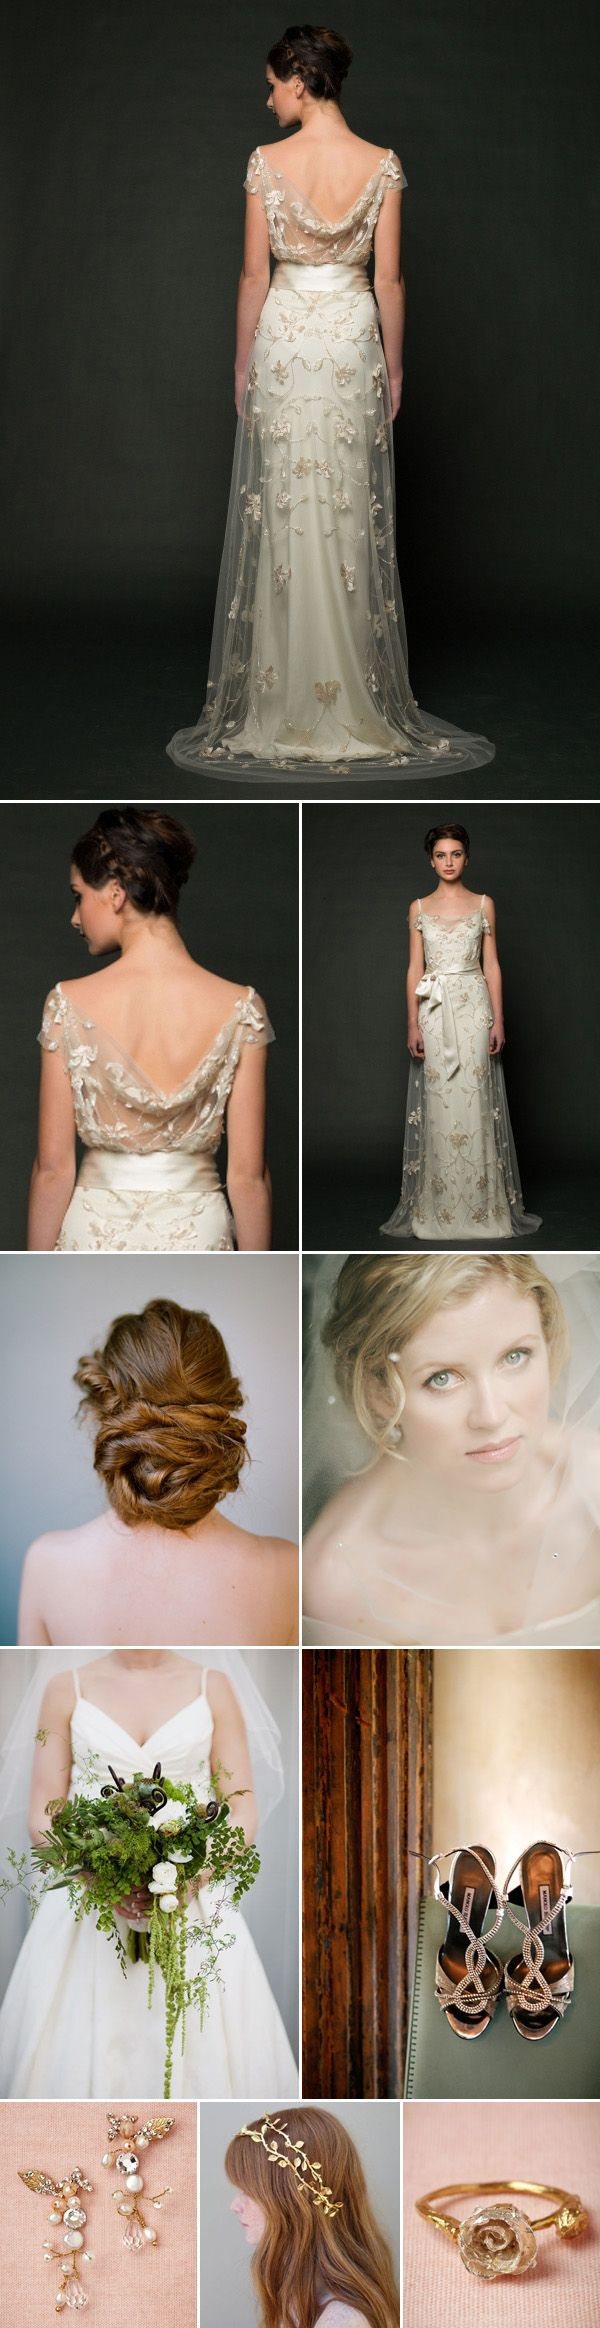 This gorgeous ethereal gown by Sarah Janks inspired this complete bridal style wedding day look | via junebugweddings.com